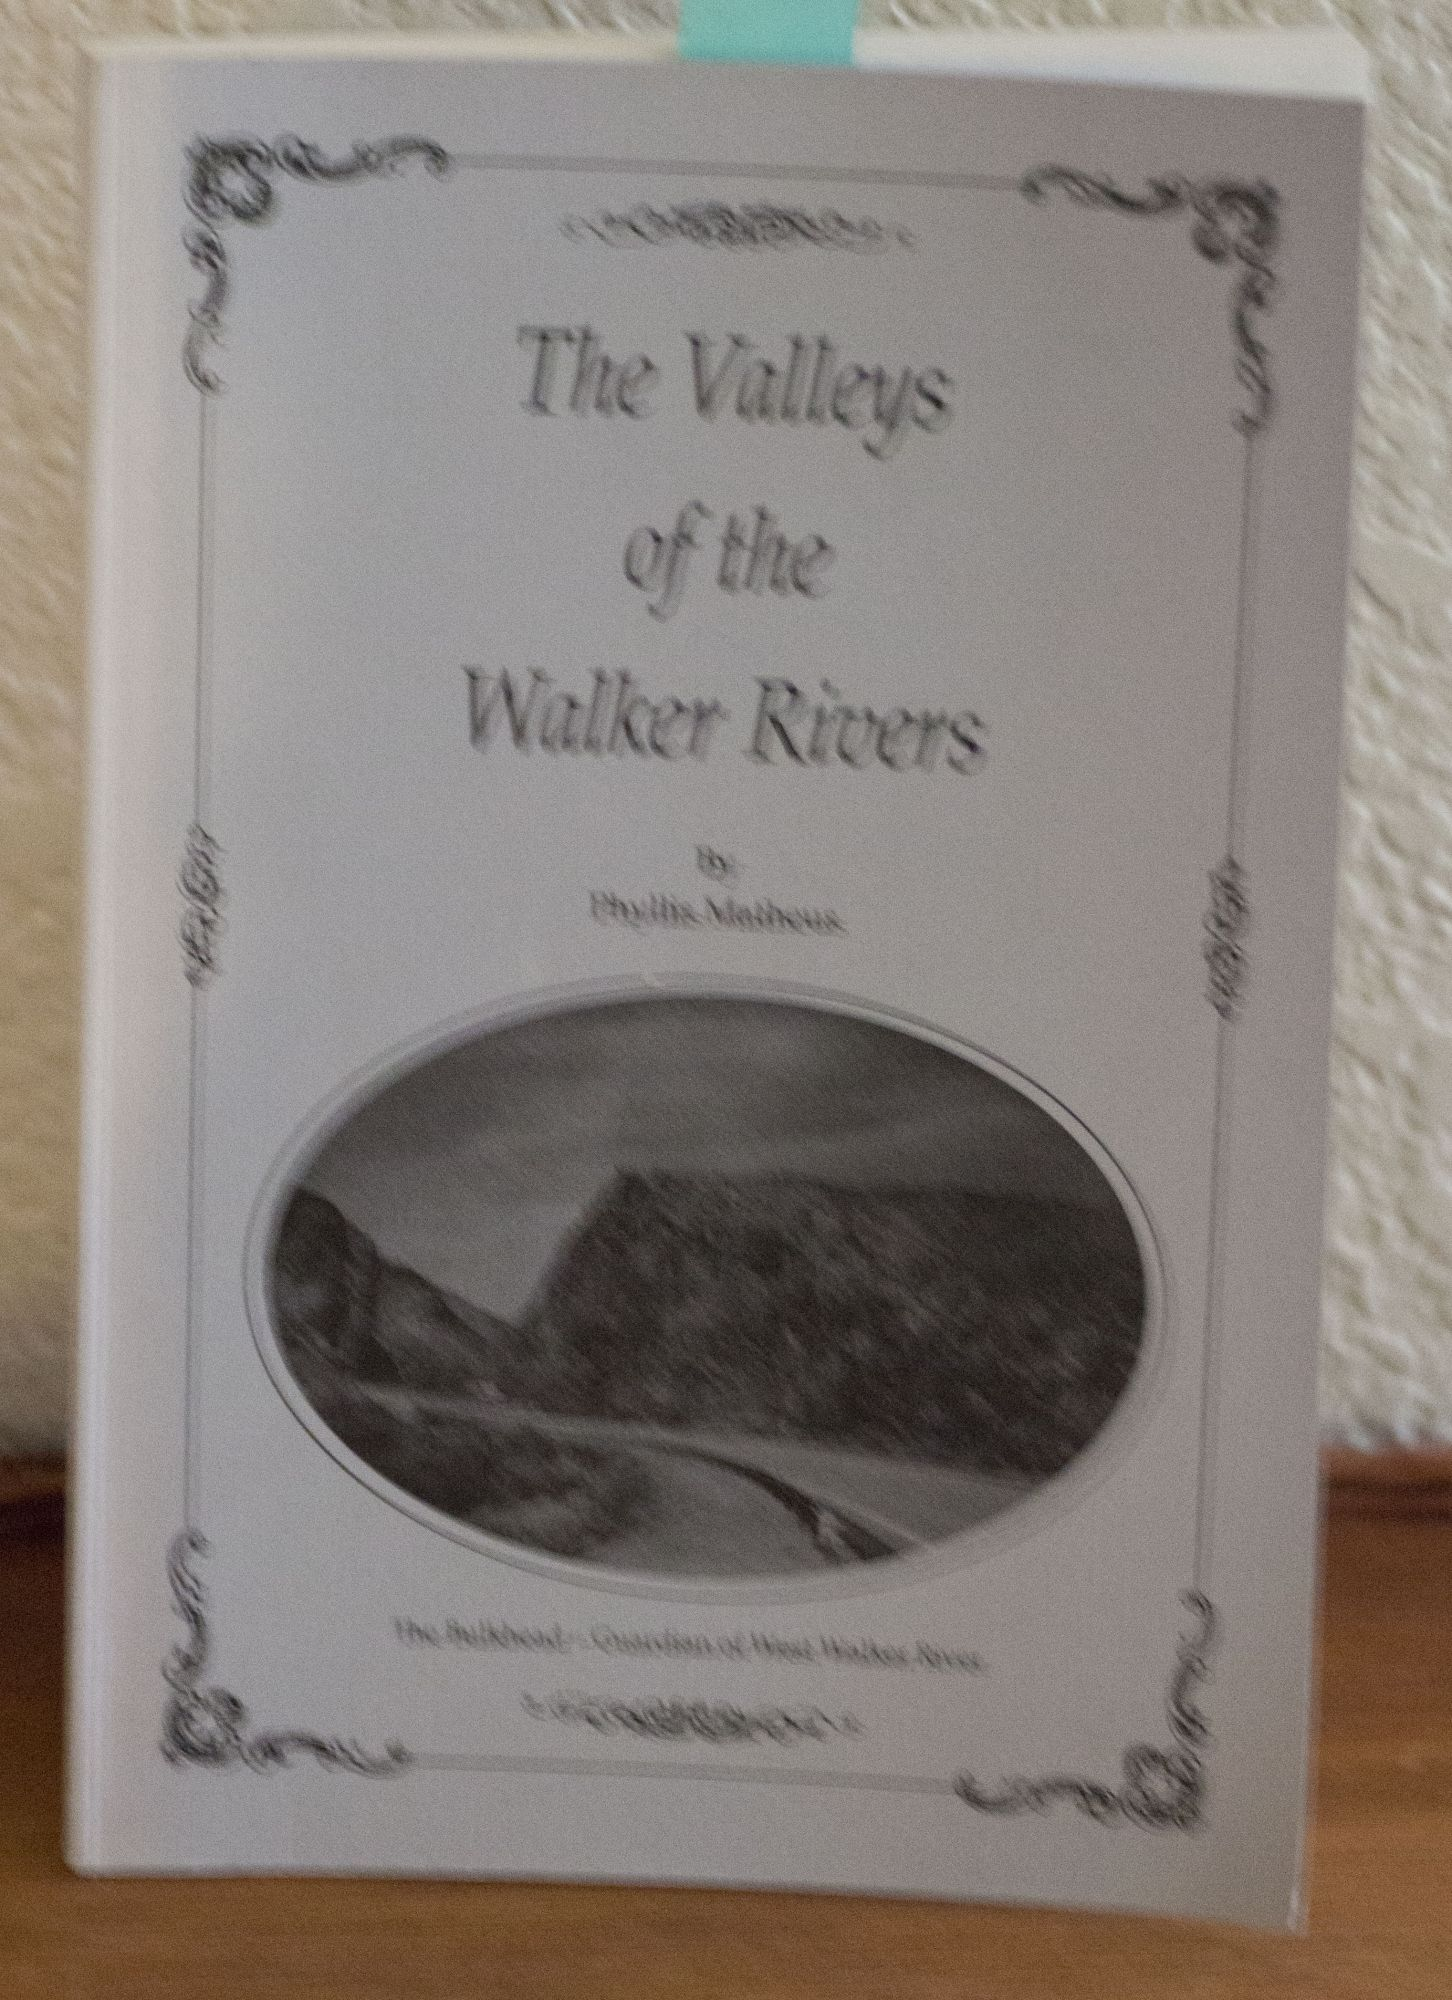 The Valleys of the Walker Rivers